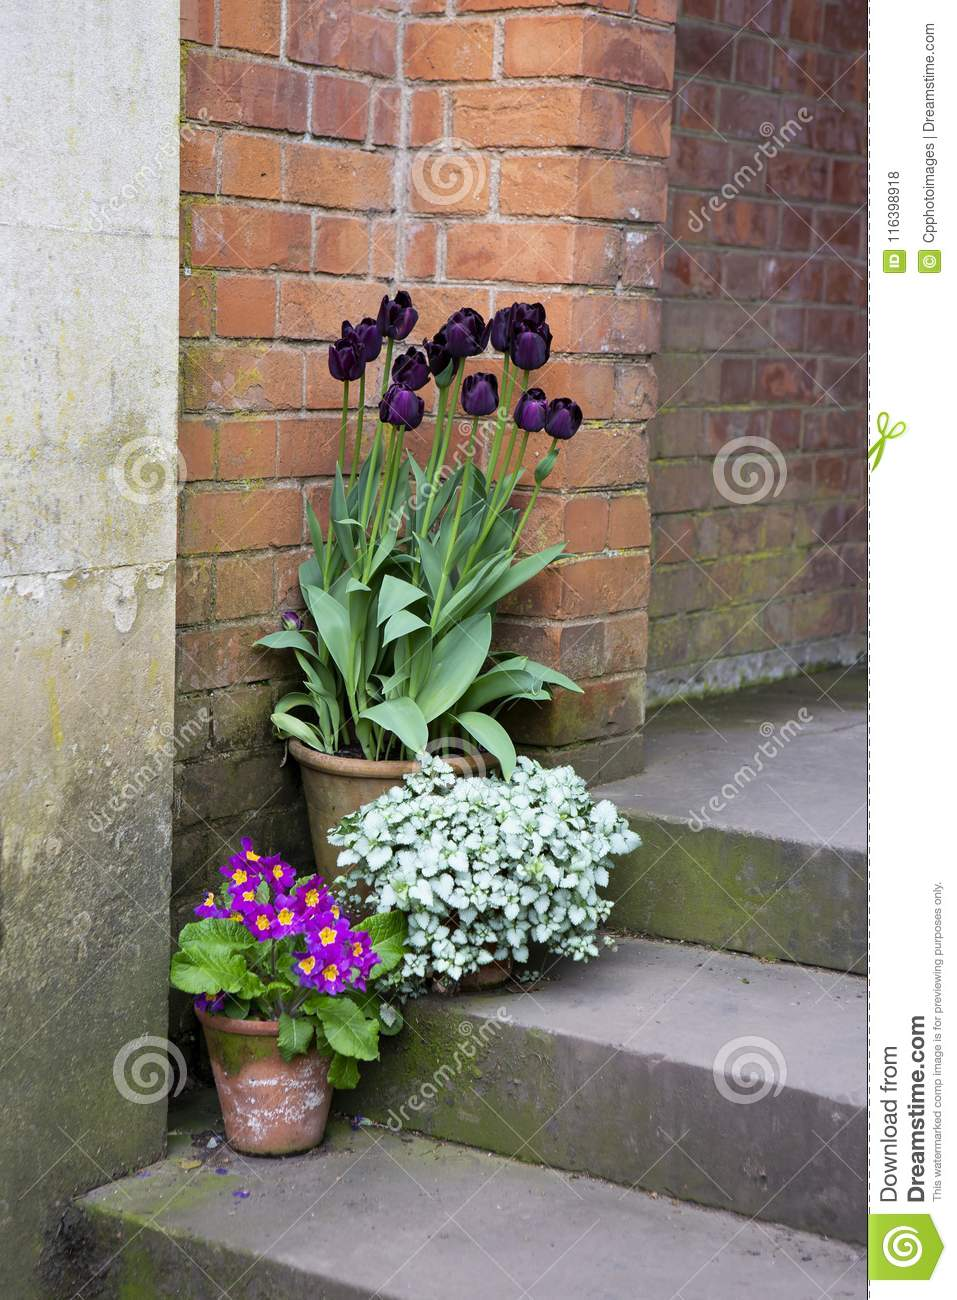 Pretty Flowers On Pots On Steps Stock Photo Image Of Tulips Soil